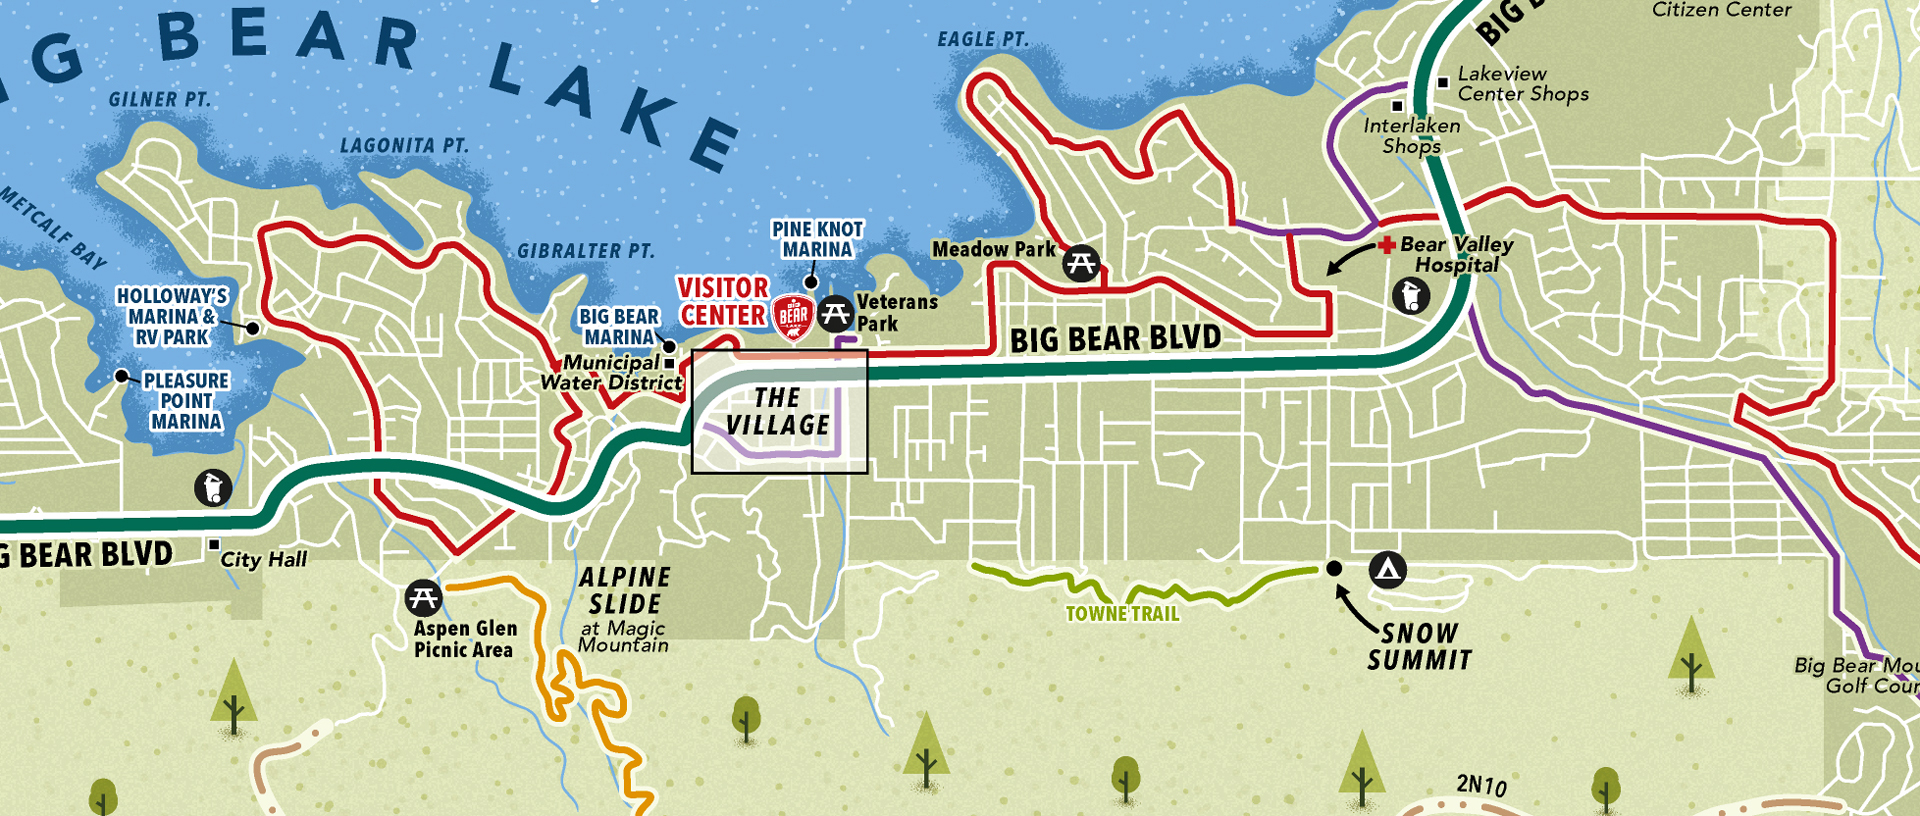 Big Bear Lake map close-up